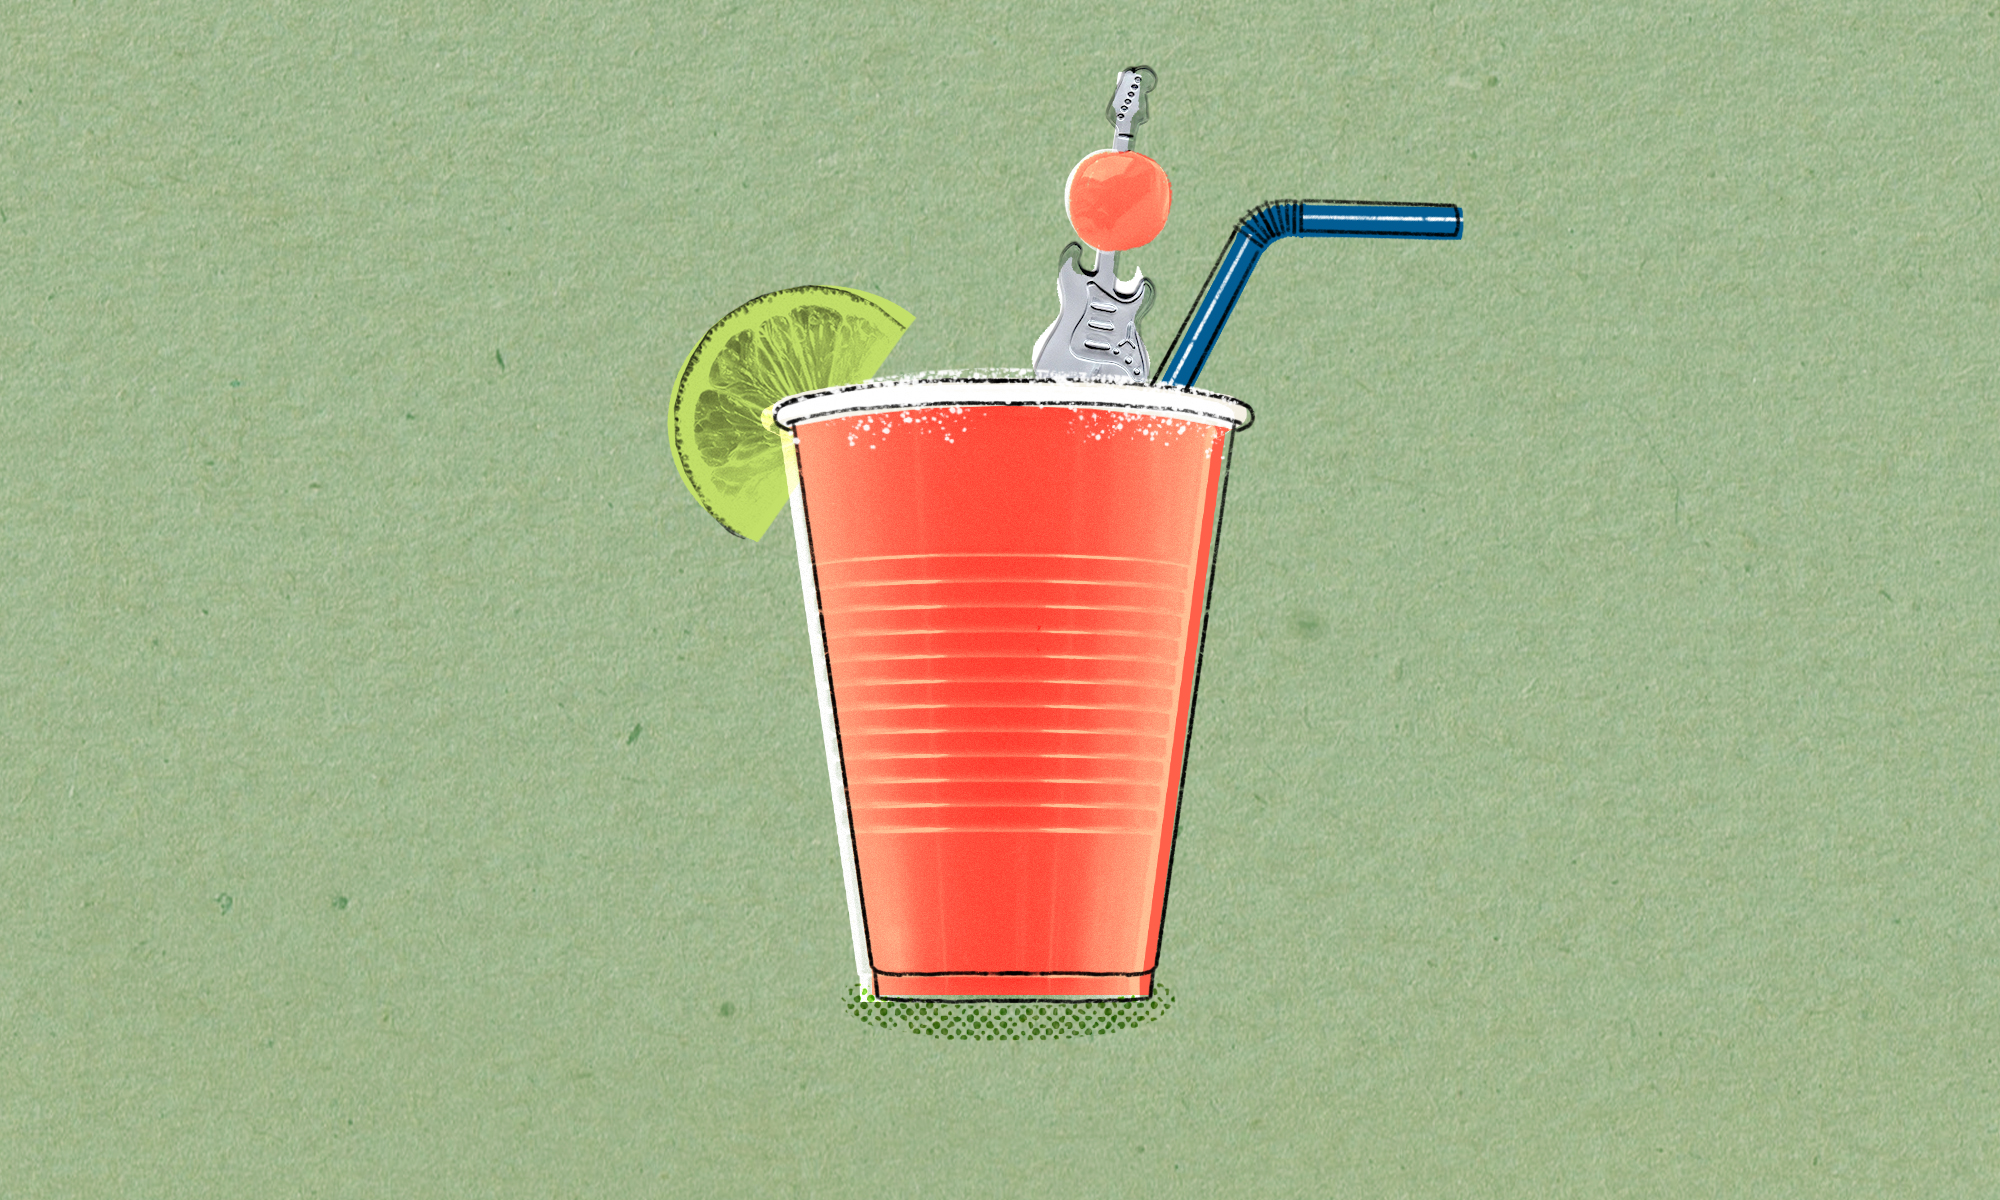 illustration of a red plastic cup with a blue straw, a lime wedge perched on the rim, and a skewer in the shape of a electric guitar coming out of the cup with a cherry on the top